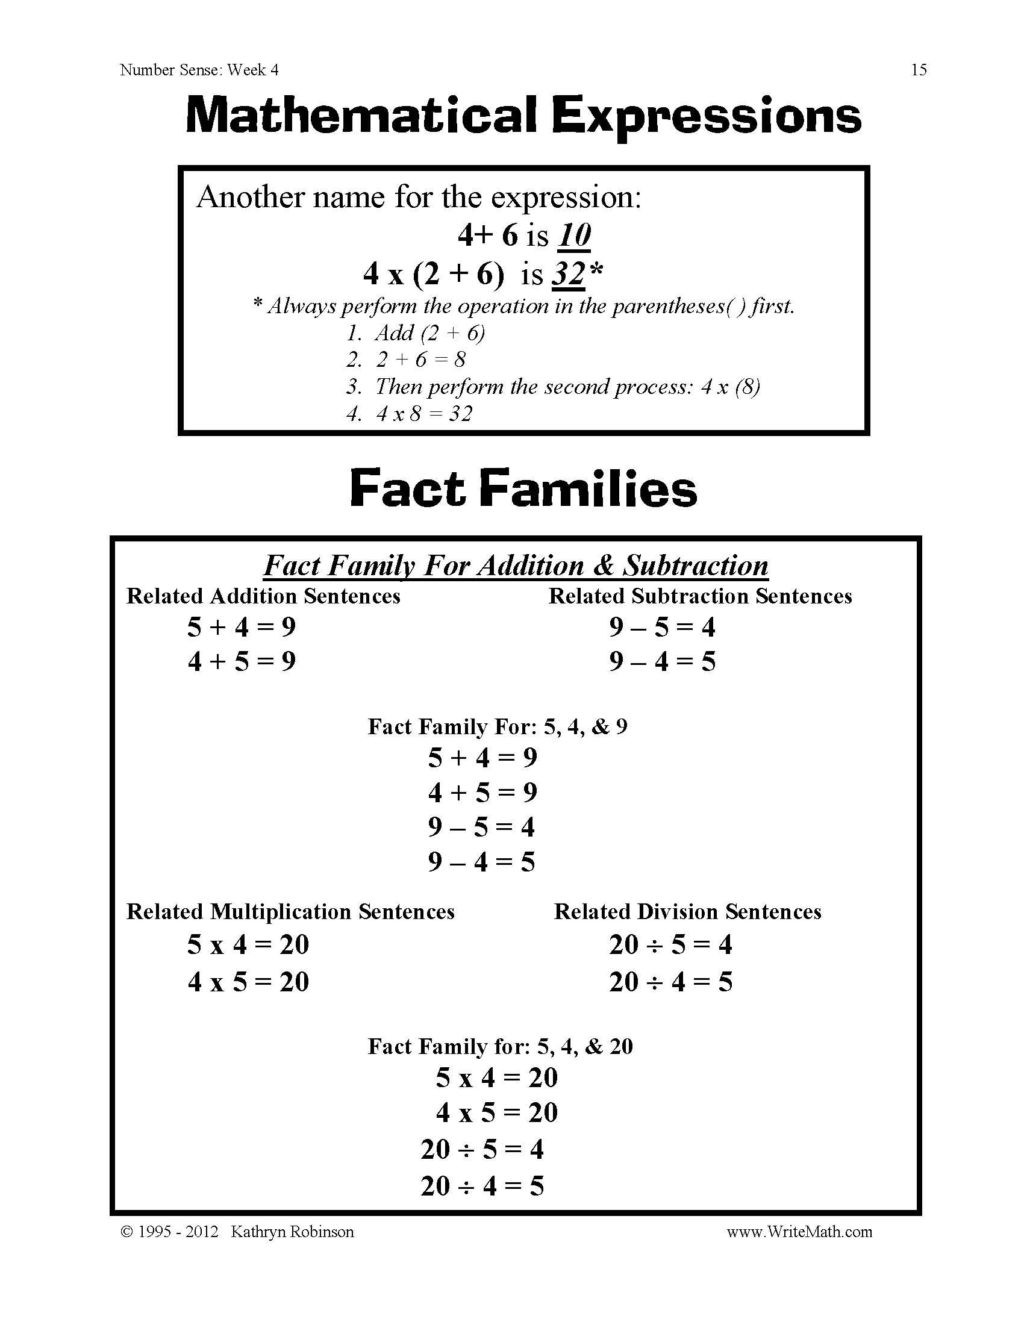 5th Grade Division Worksheets Worksheet Free Math Worksheets 5thde Level Printable Fun